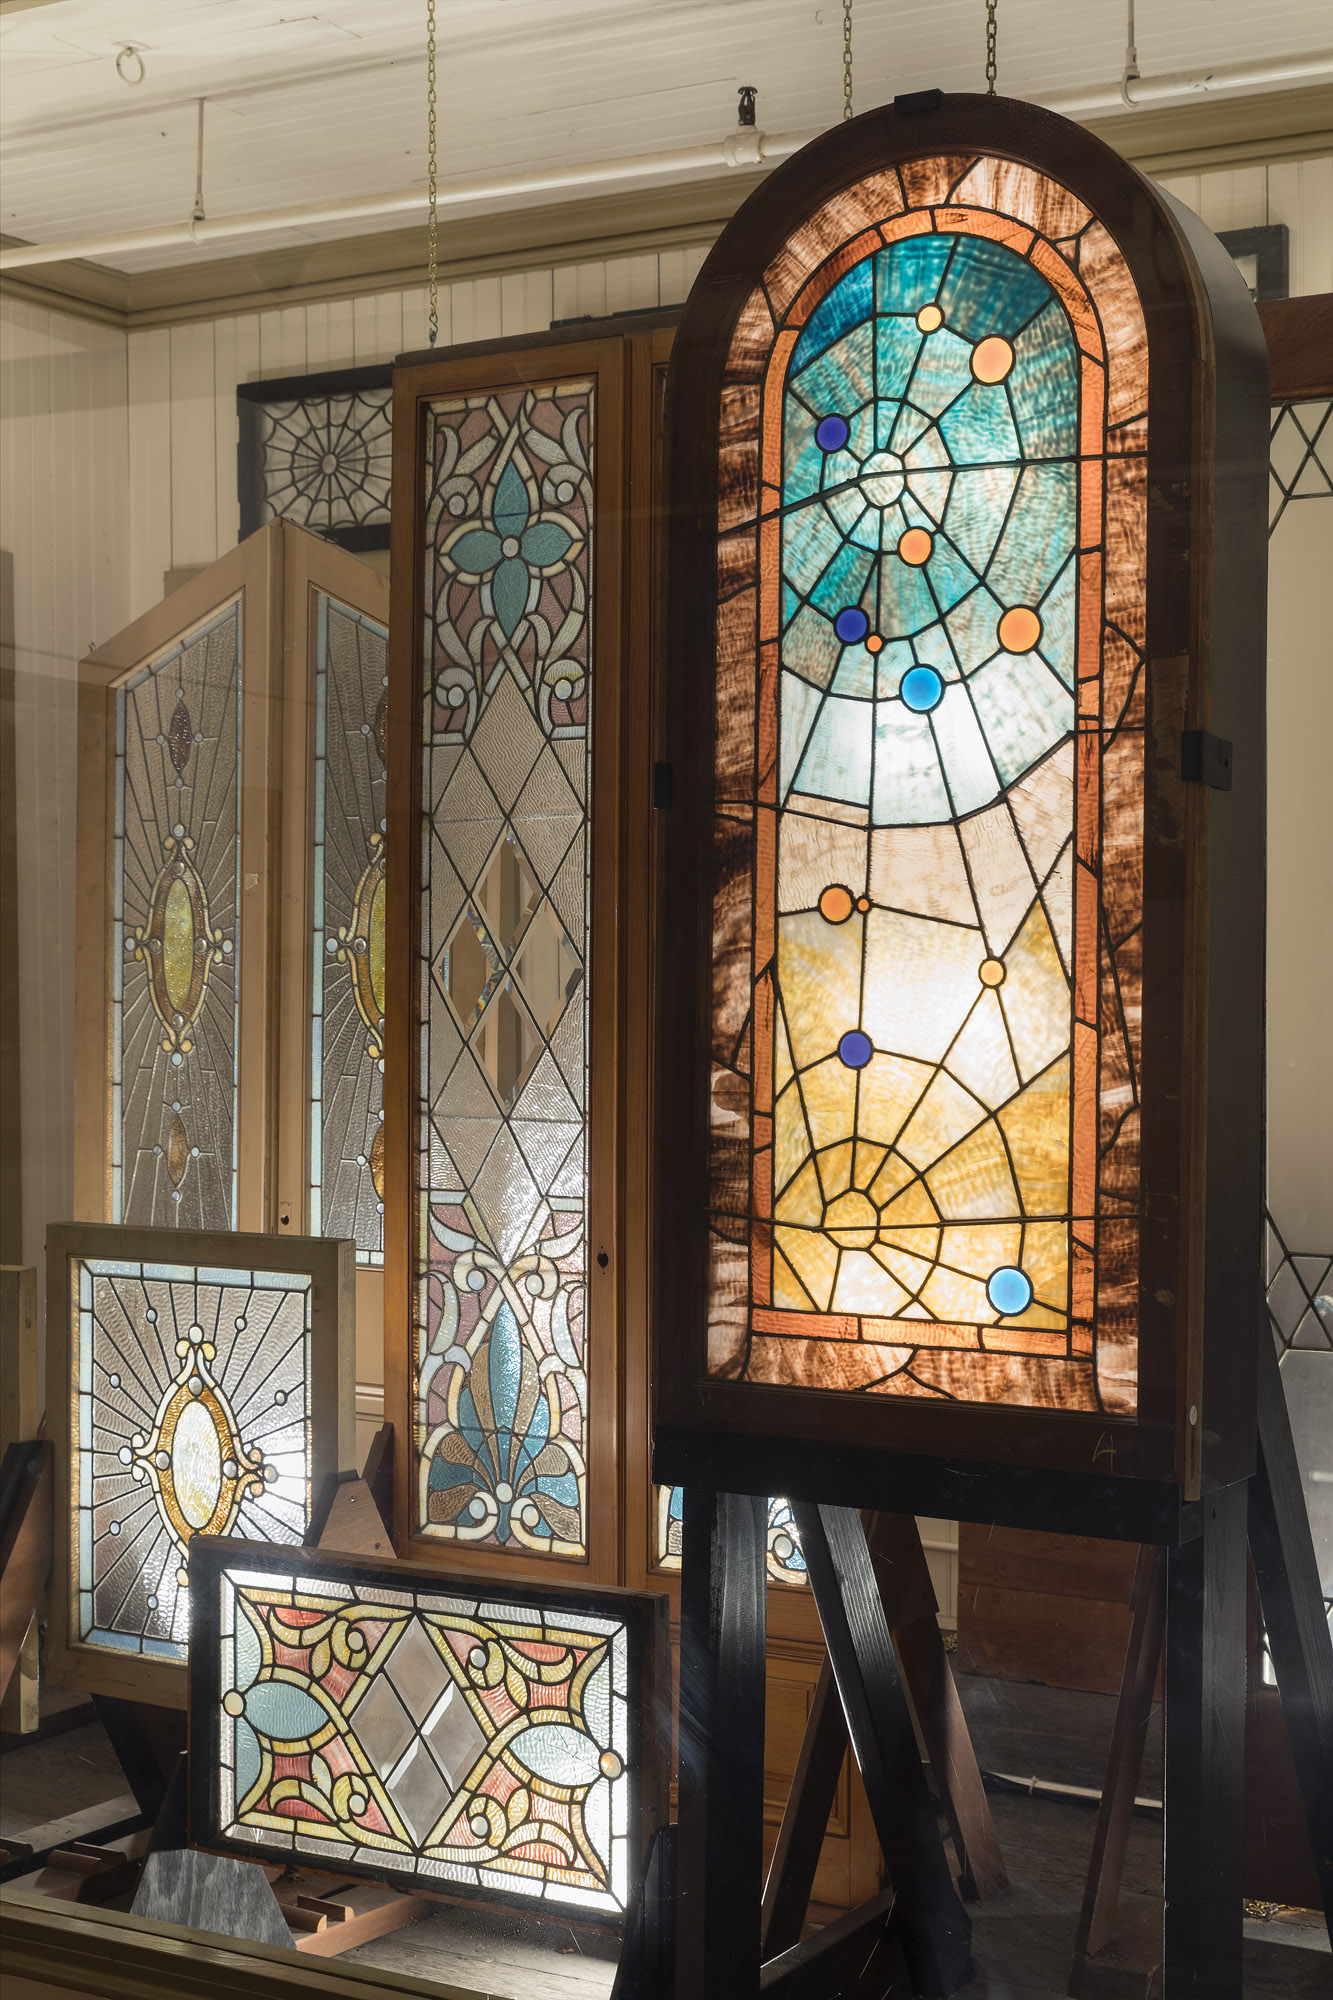 Many stained-glass windows were never installed, and today are displayed in Sarah's storage room.